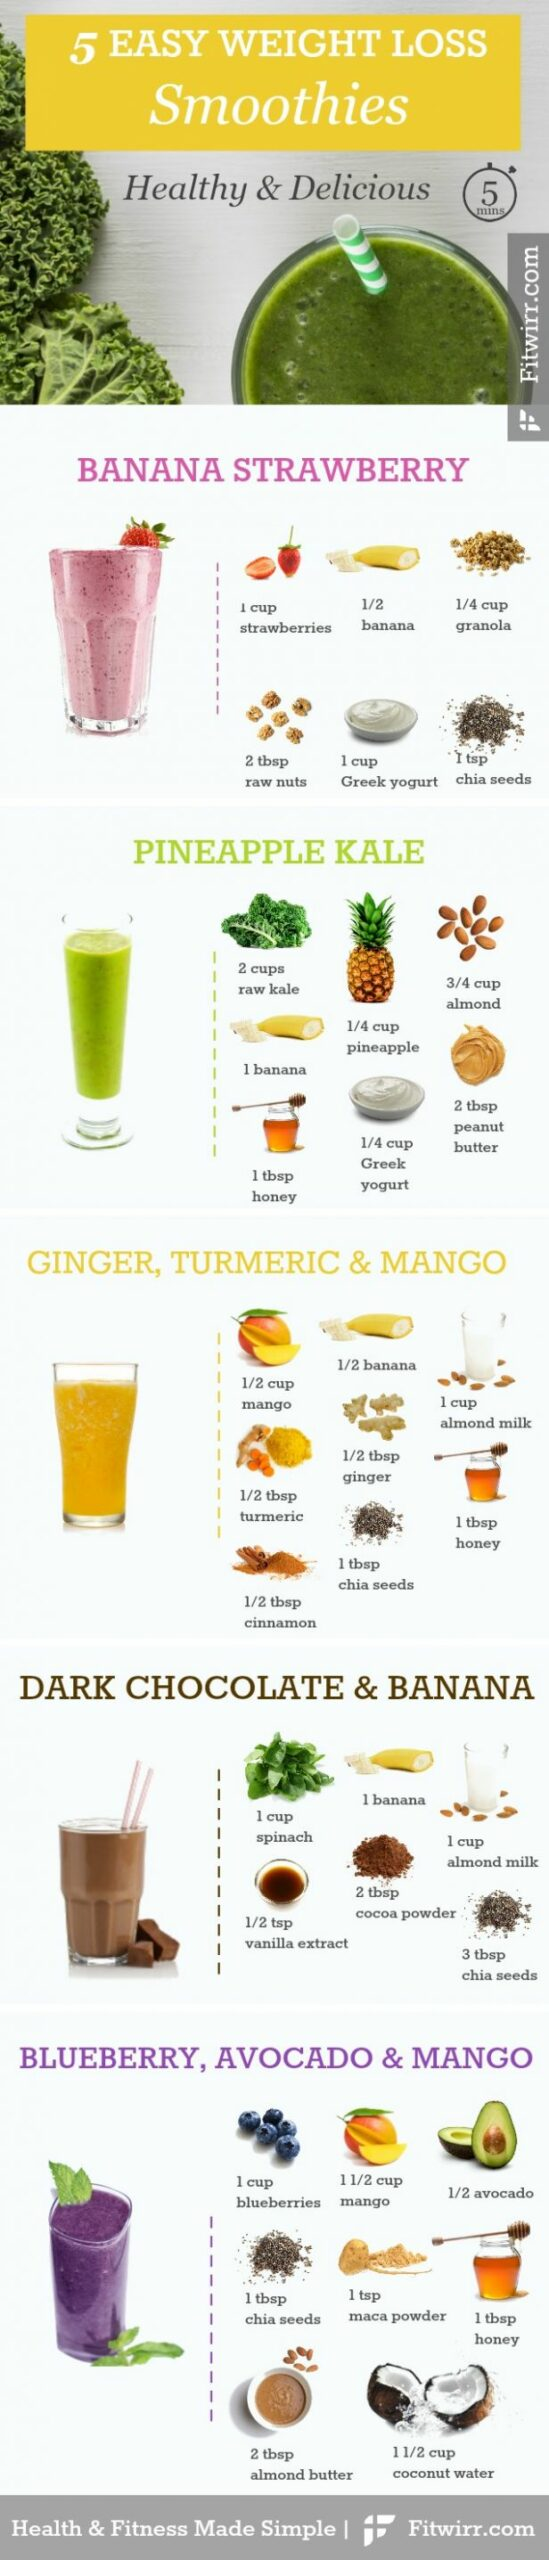 9 Best Smoothie Recipes for Weight Loss - Fitwirr - Smoothie Recipes For Weight Loss Meal Replacement